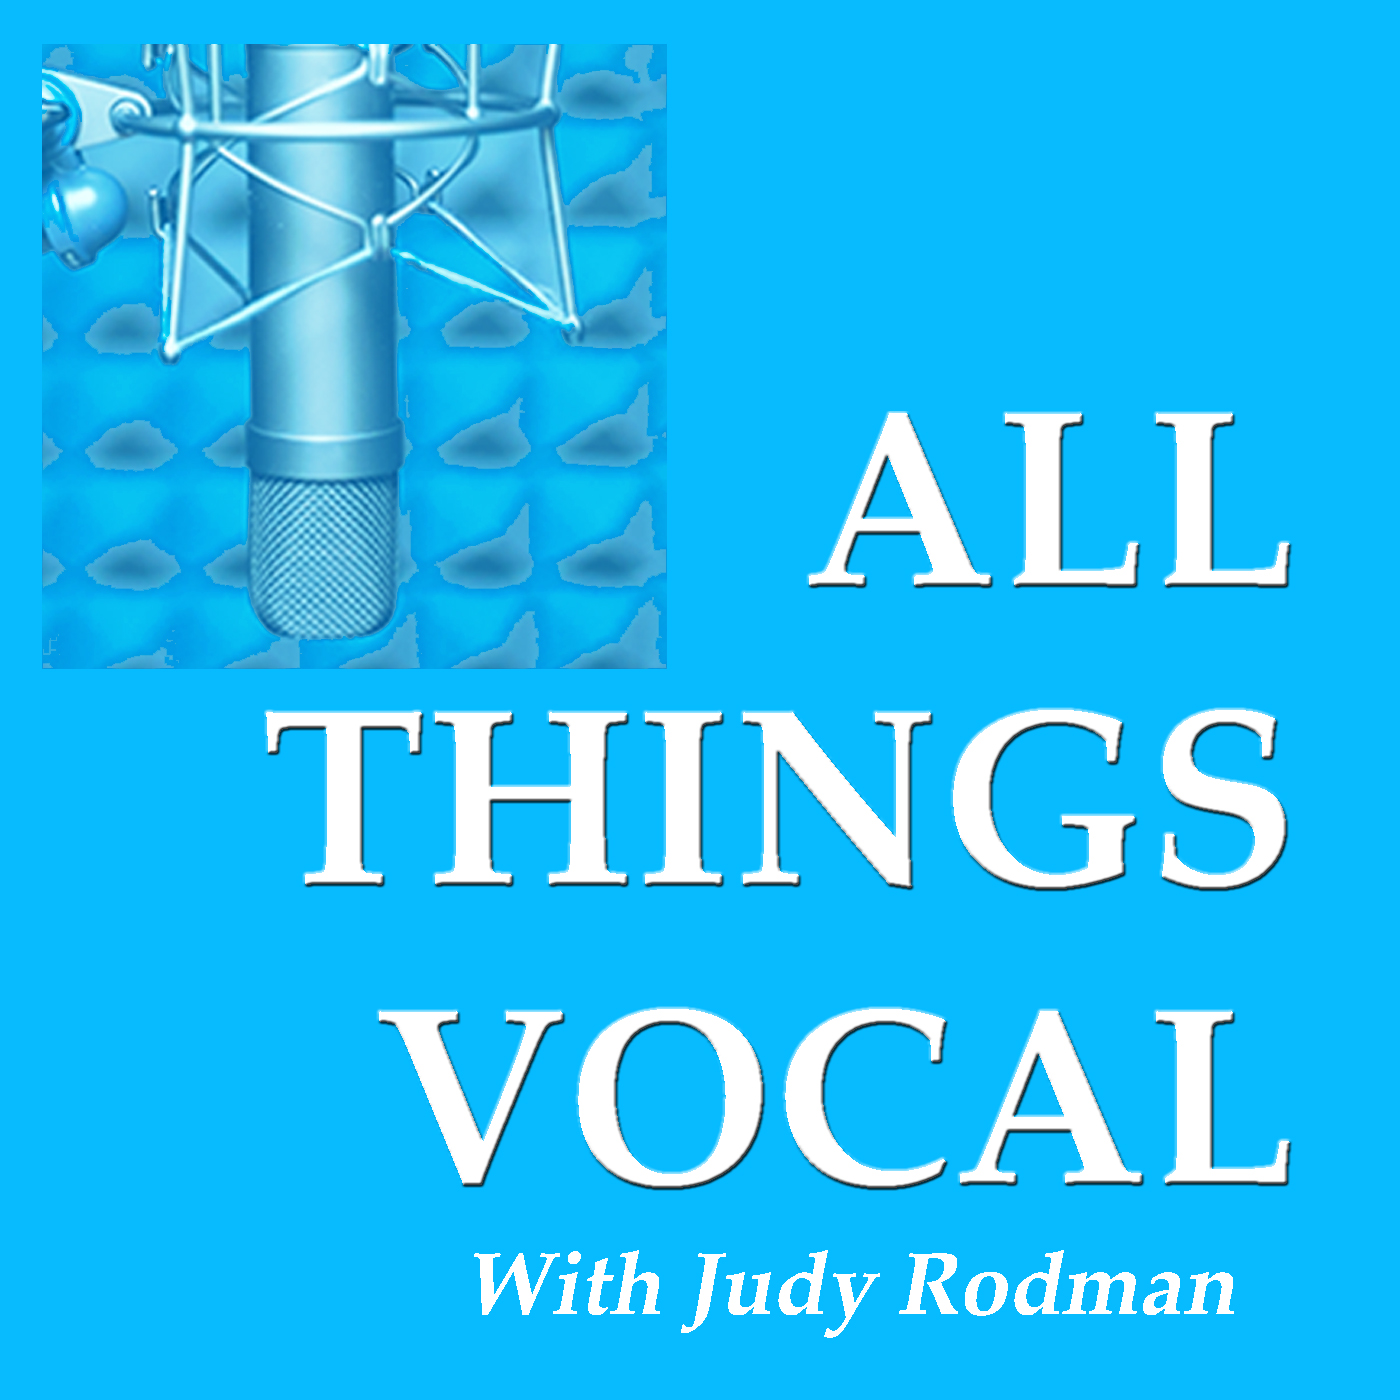 All Things Vocal: Podcast for Singers, Speakers, Voice Coaches and Producers